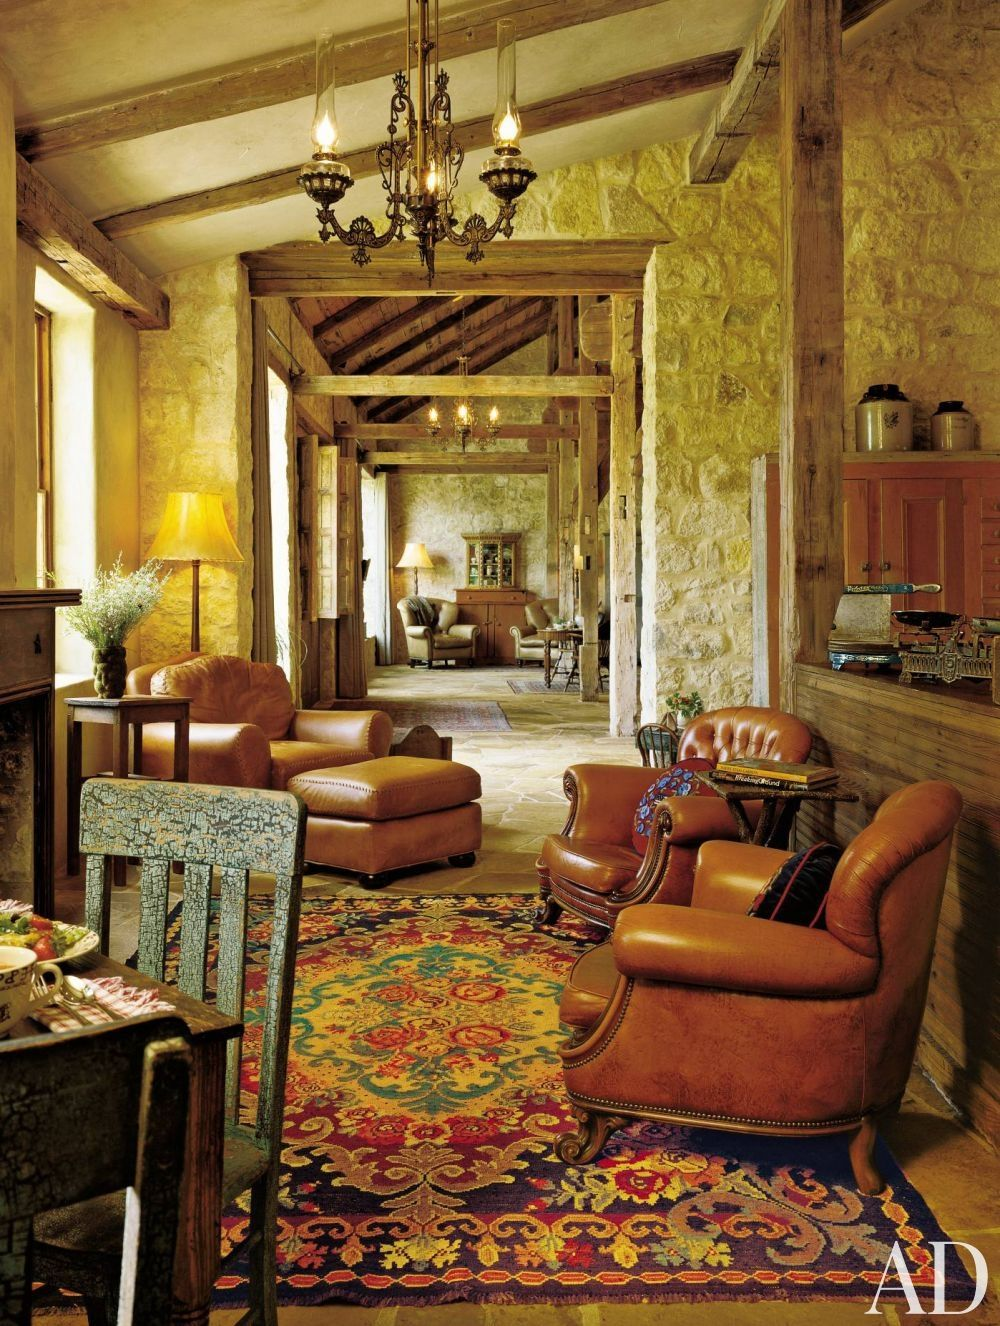 Fredericksburg TX   Antidote For All The Brown Leather Is A Richly Colored  Rug